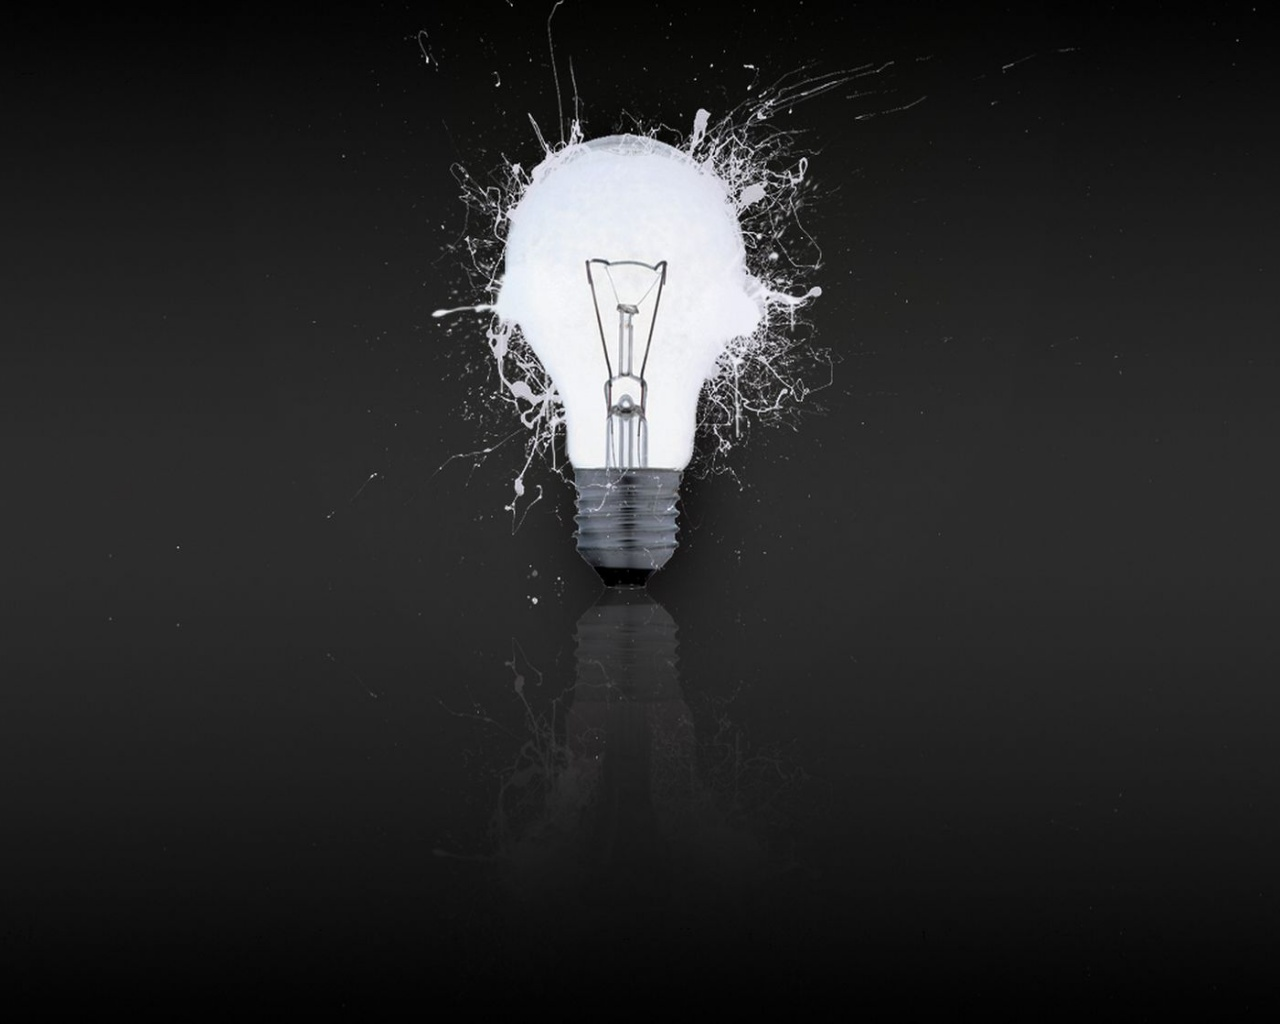 1280x1024 White light bulb desktop PC and Mac wallpaper